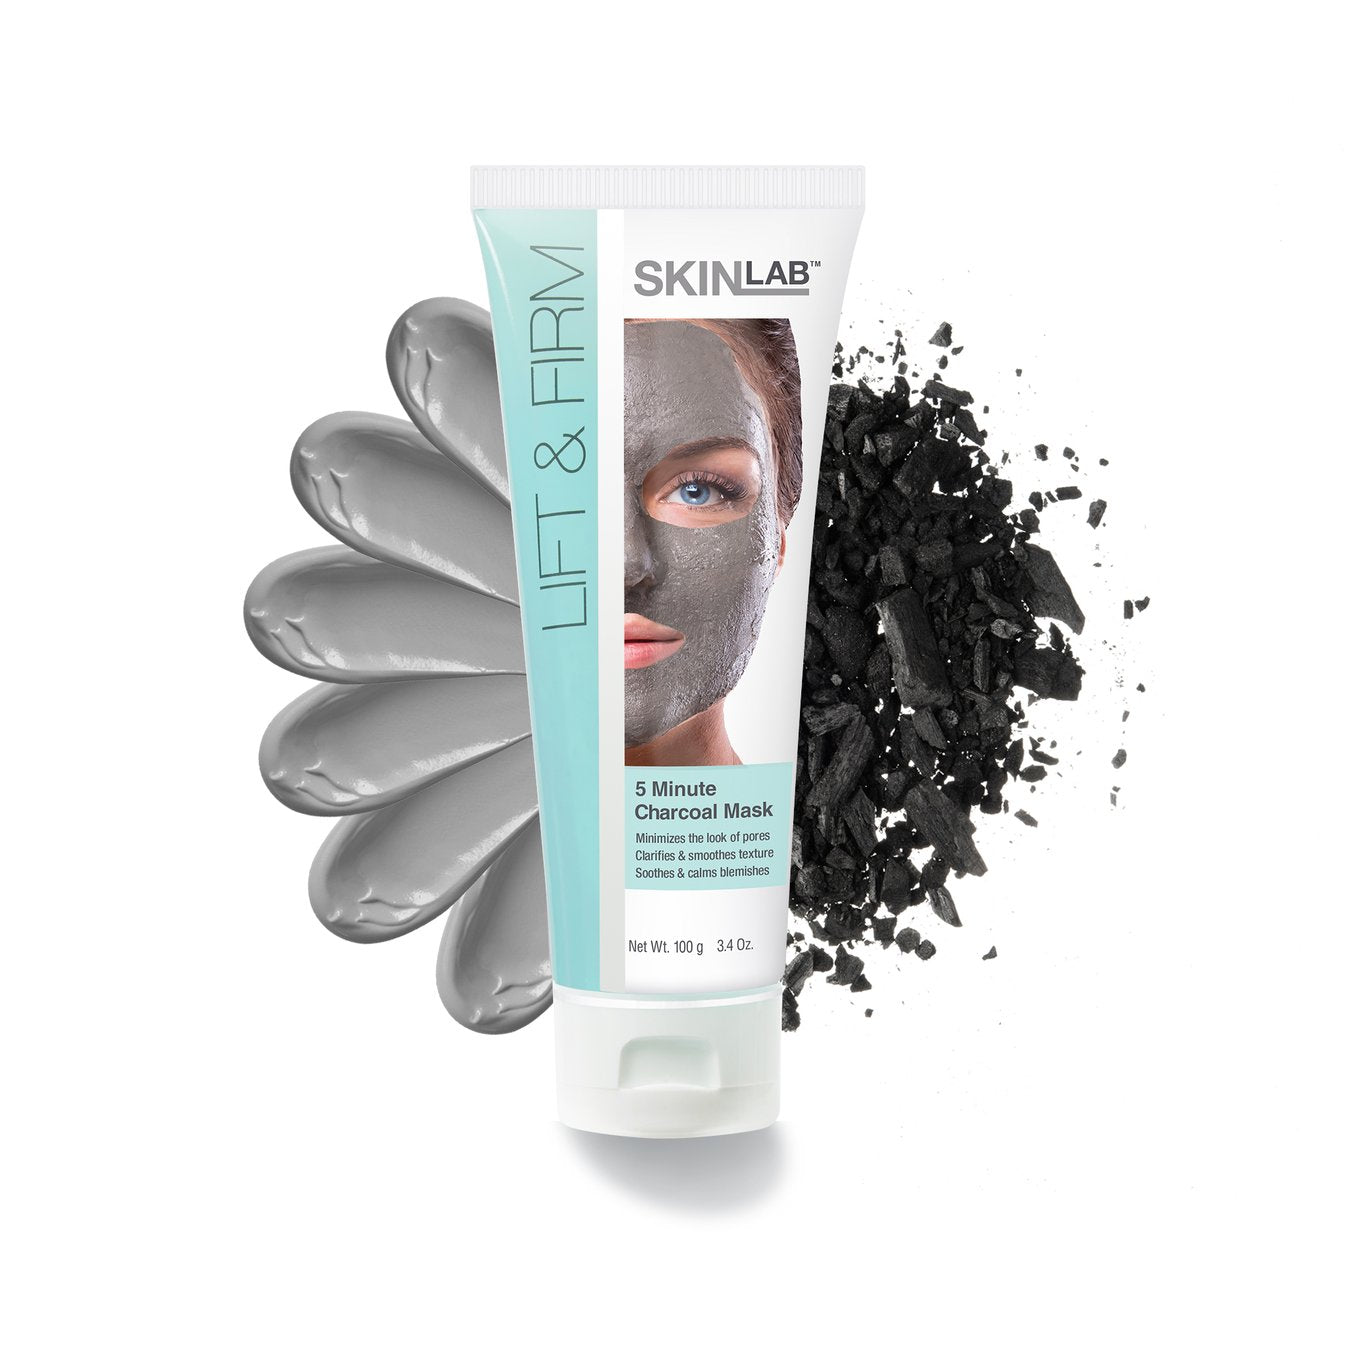 Lift & Firm 5 Minute Charcoal Mask